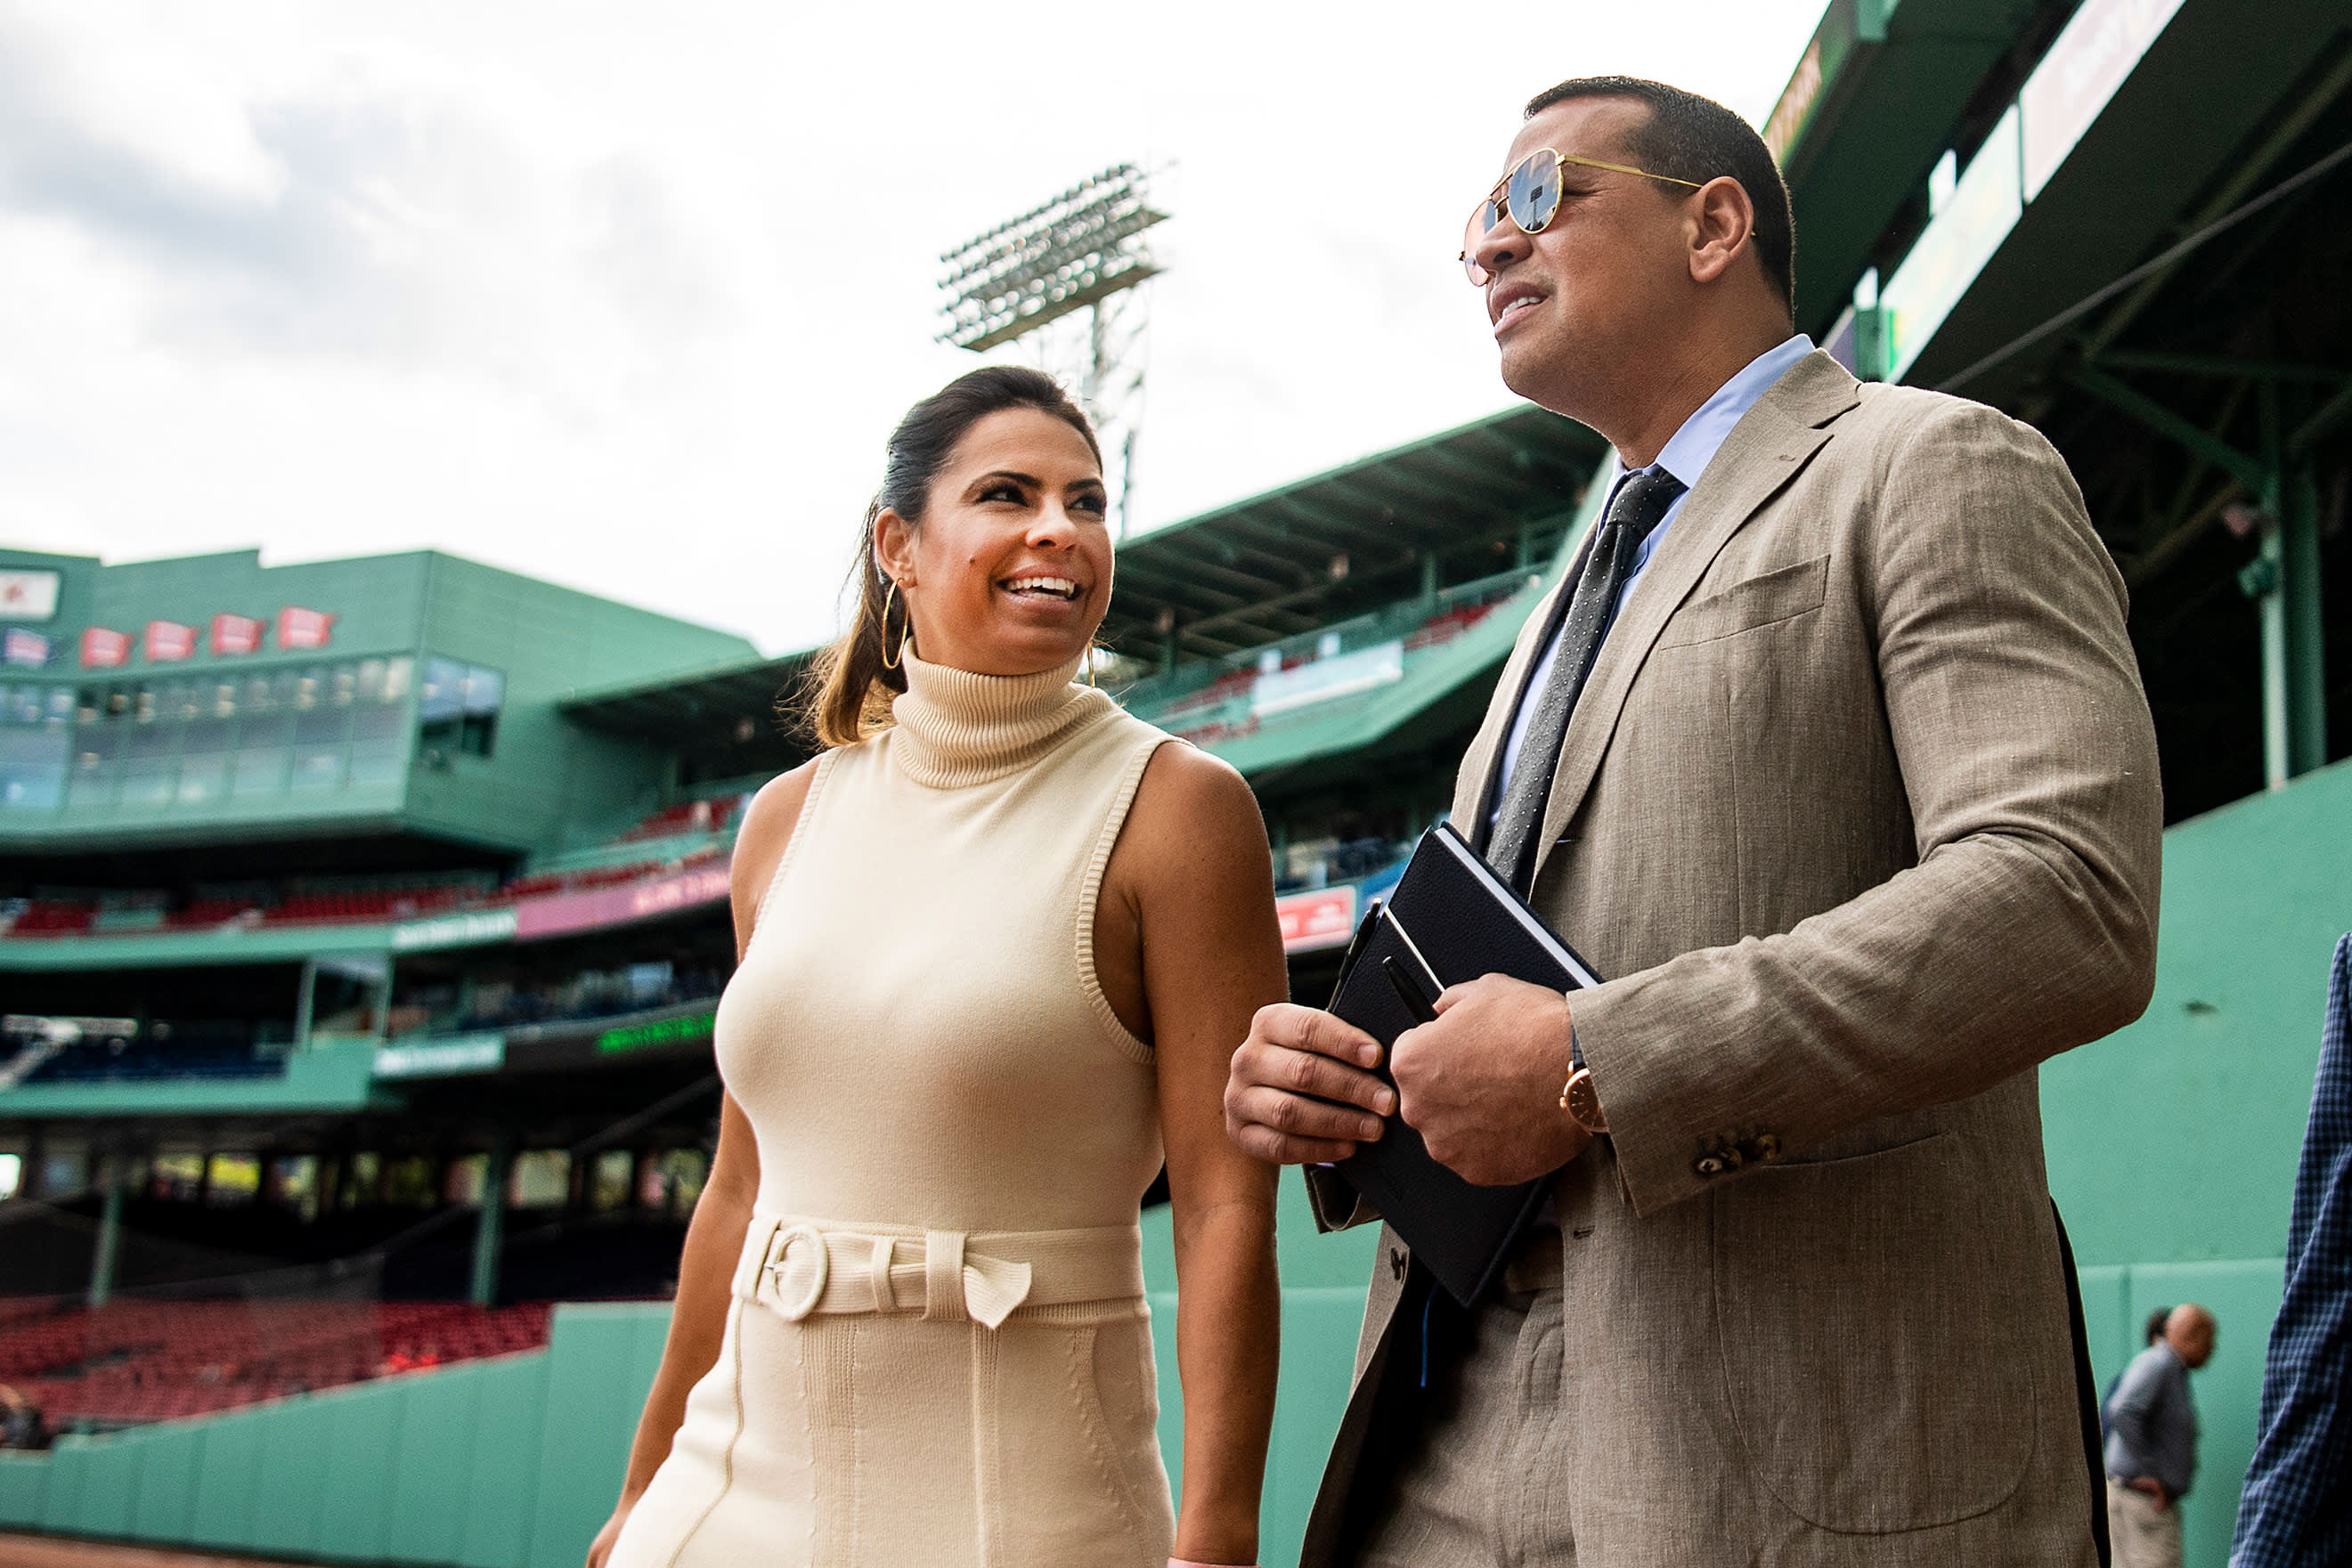 MLB analyst Jessica Mendoza signs extension at ESPN, resigns from Mets